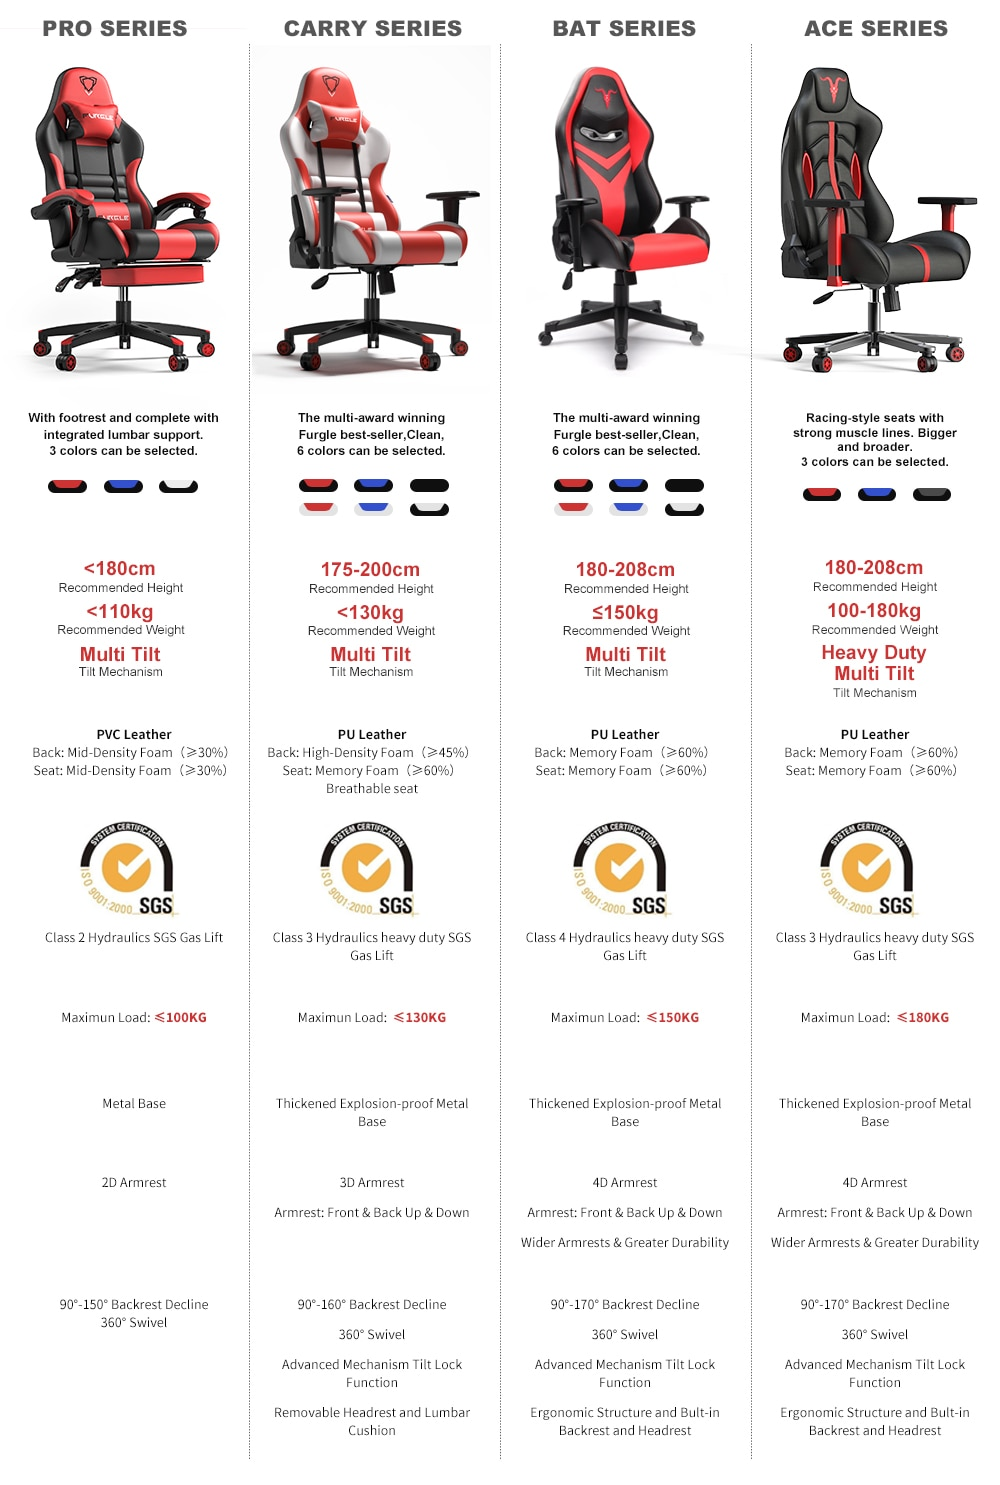 Hbc70fe1367714259b49d4a6ca61e71f7z - Furgle Carry Series Office Chair WCG Ergonomic Gaming Chair Computer Chair with Body-hugging Leather Boss Chair Armchair Office